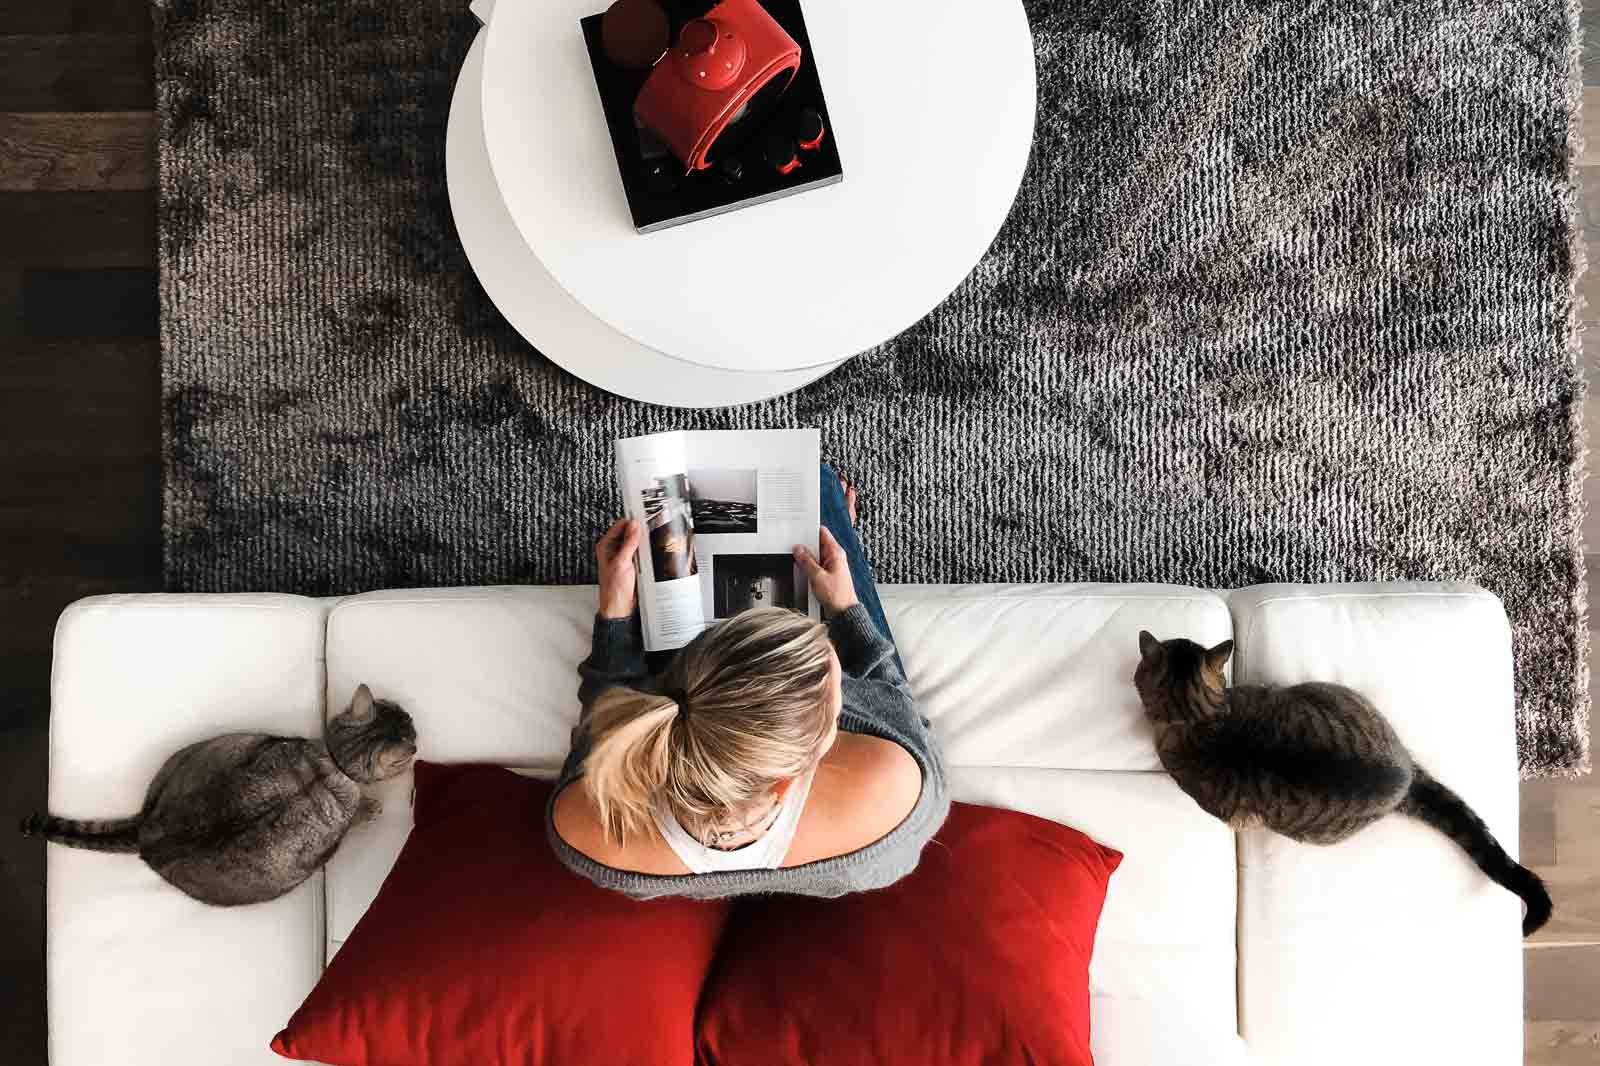 selfie from above of woman reading while cats watch